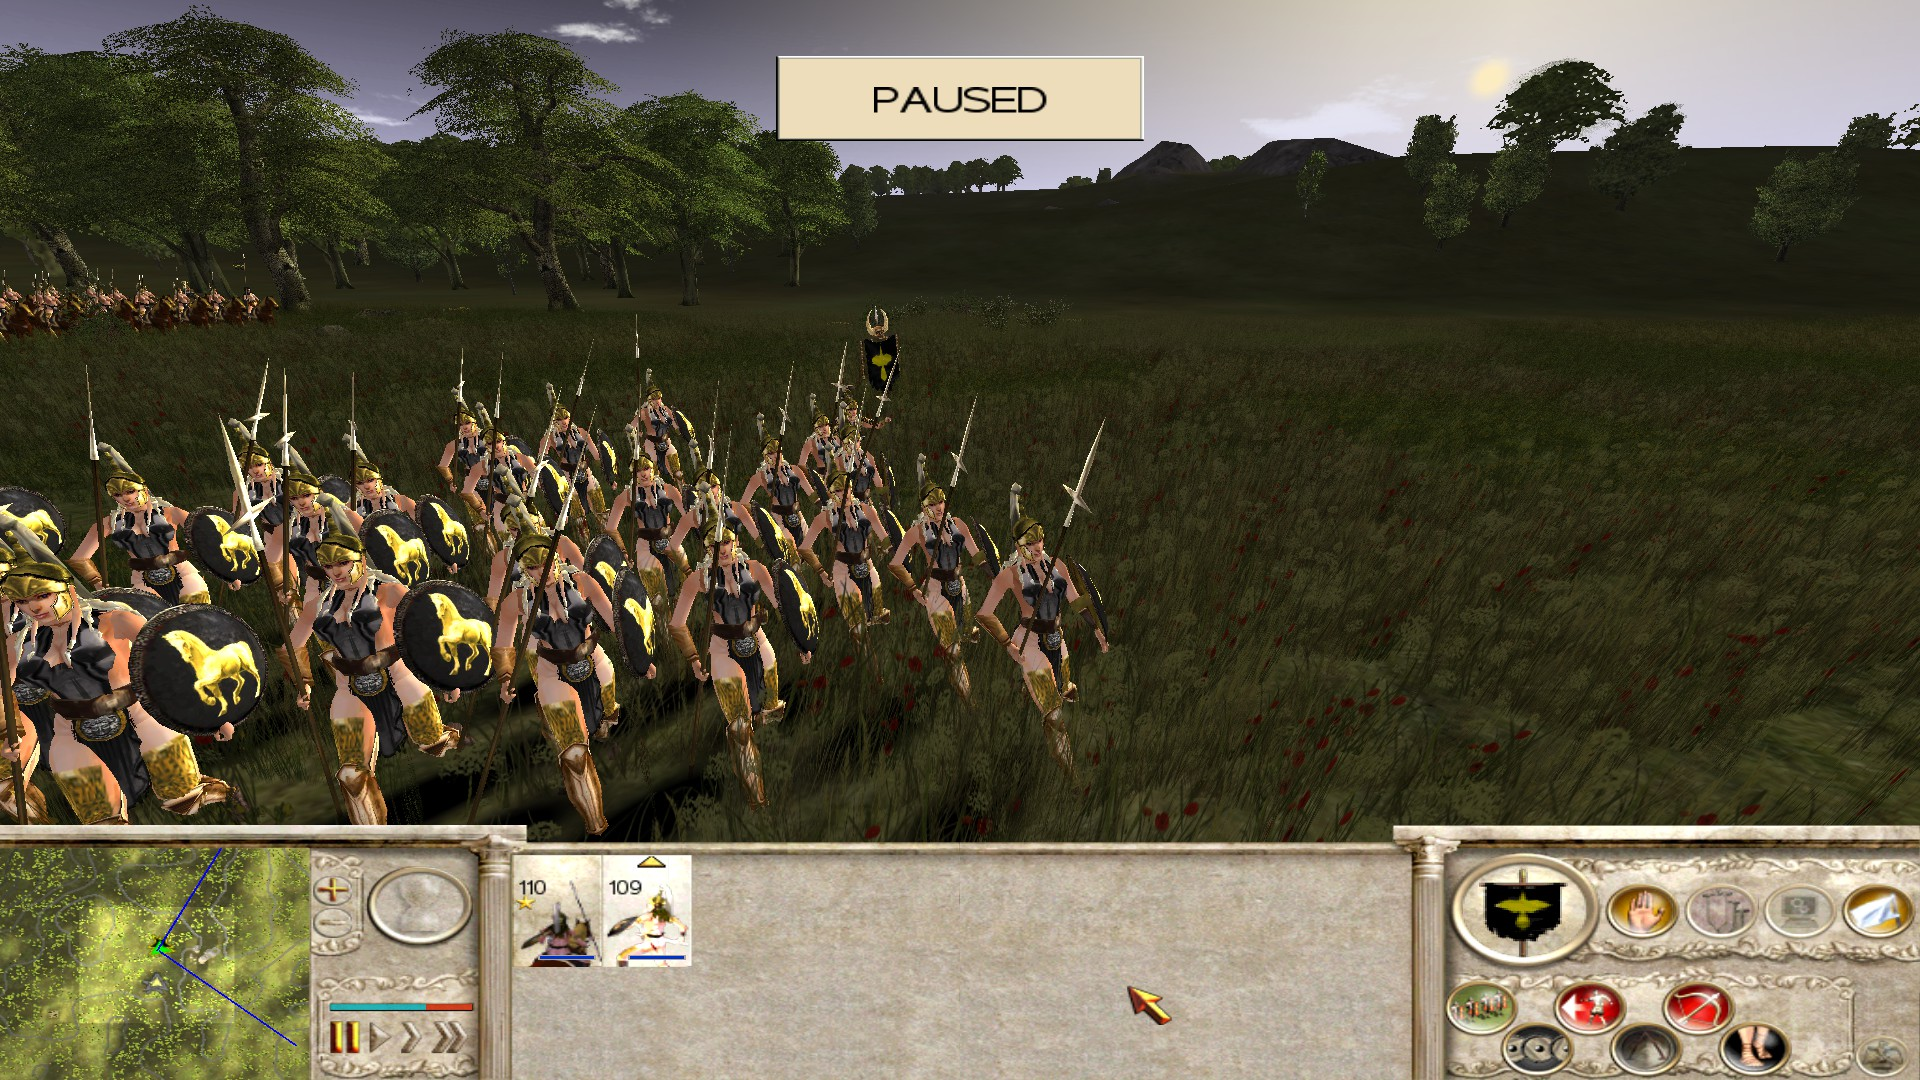 Total war nudity hentia image